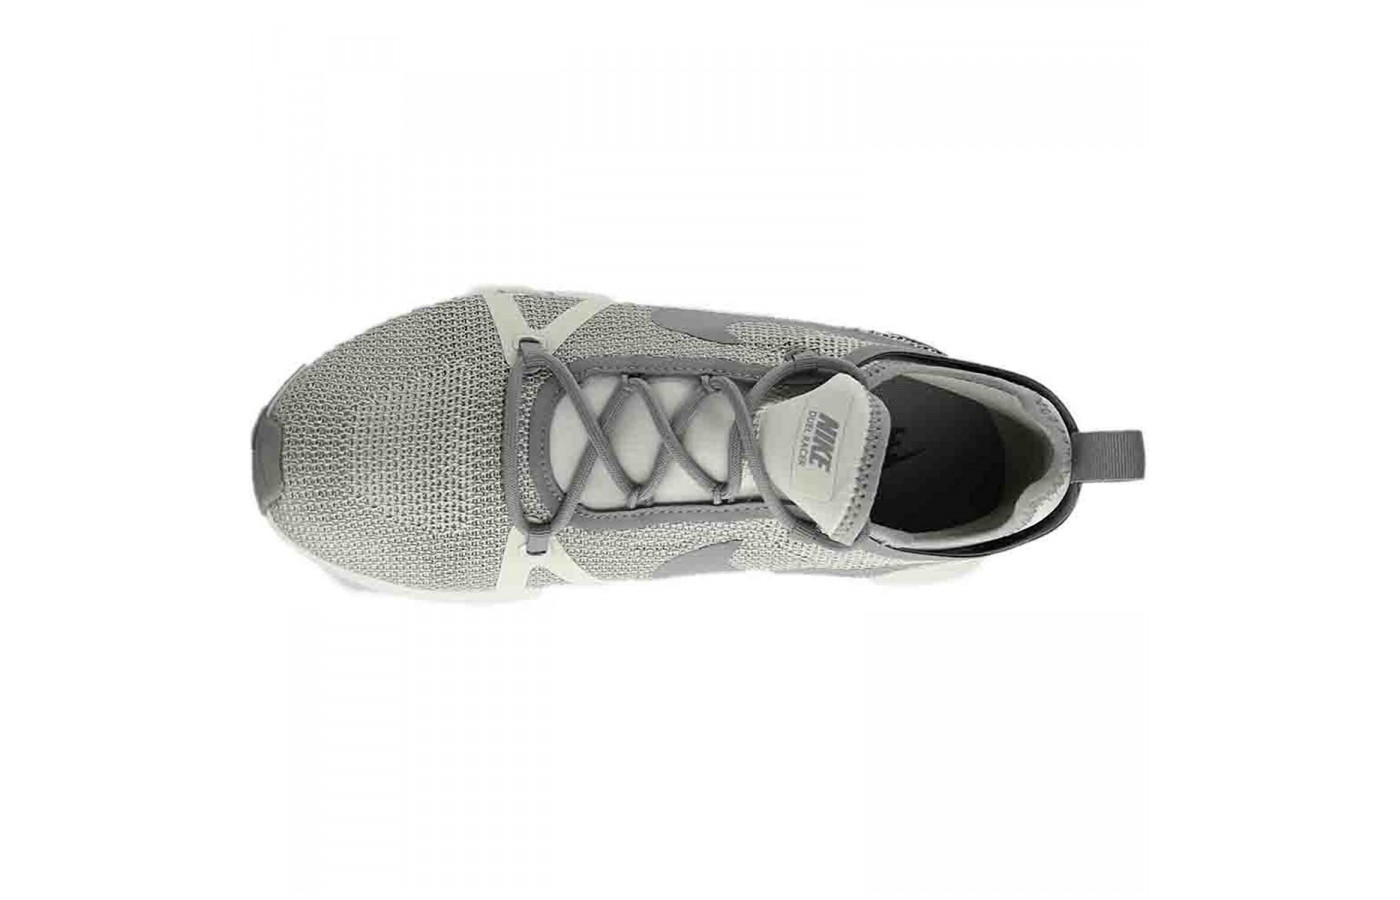 brand new 5ab65 7c781 ... The Nike Duel Racer s upper features TPU overlays  The Nike Duel Racer  has a plush padded tongue